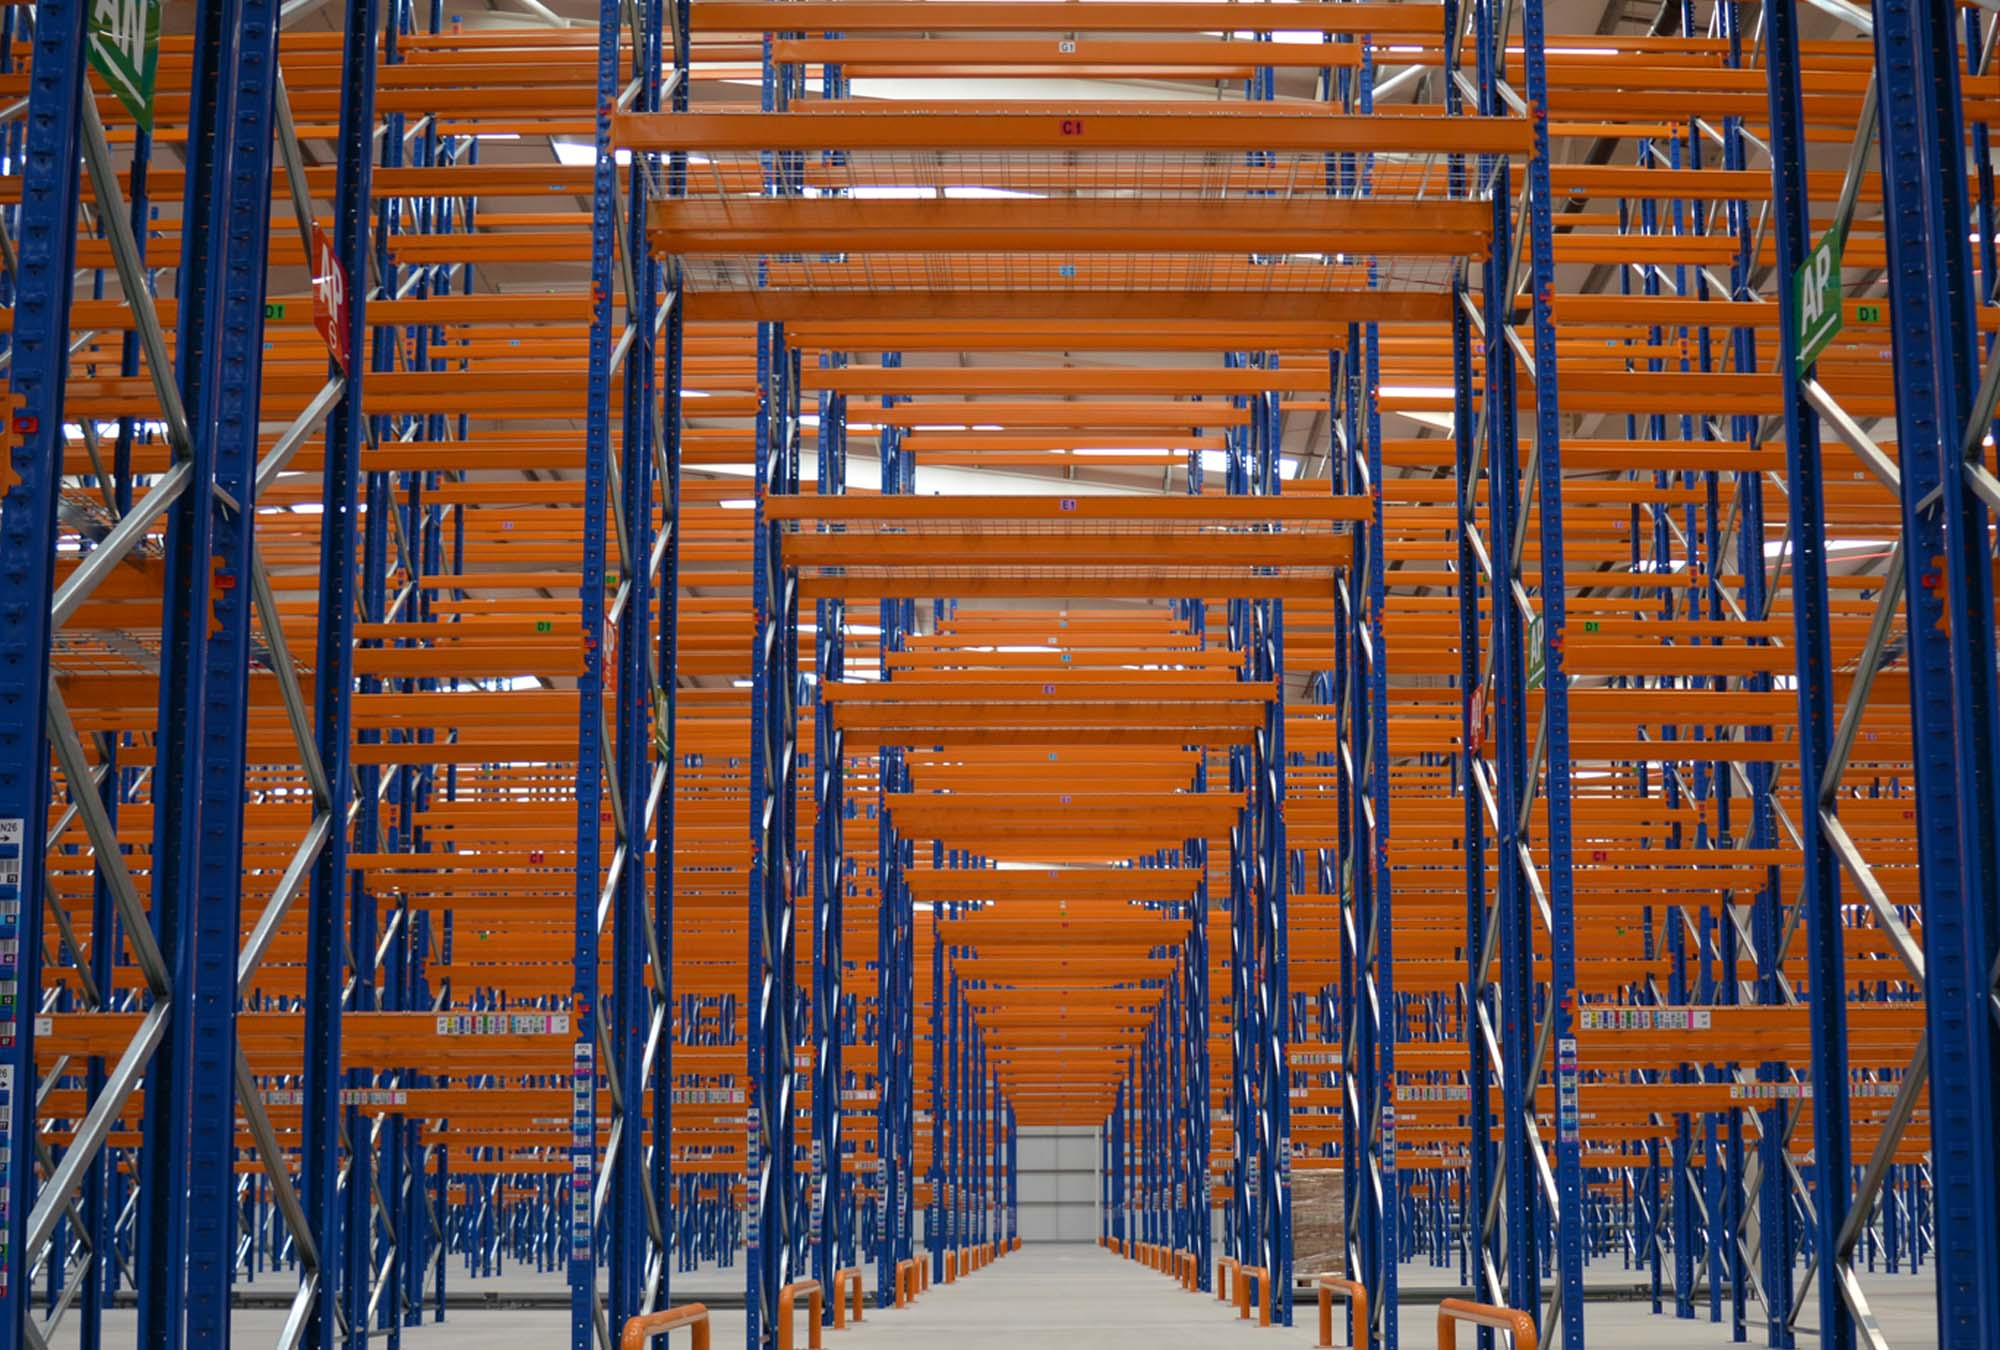 Warehouse Pallet Racking | Warehouse Design & Packing